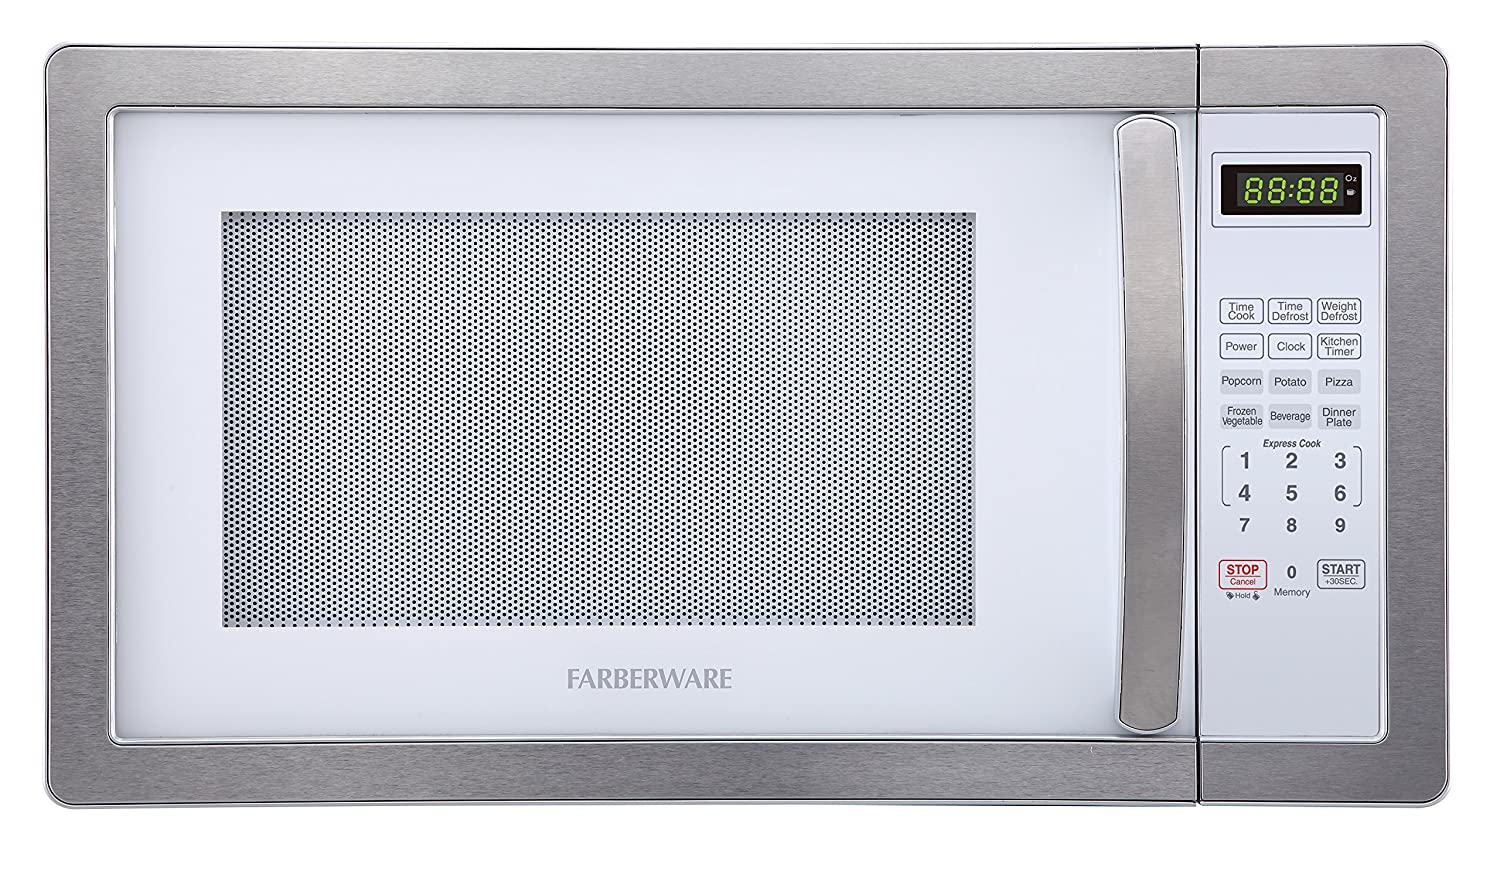 Farberware FMO11AHTBKD 1.1 Cu. Ft. 1000-Watt Microwave Oven with LED Lighting Cubic Feet, White/Platinum